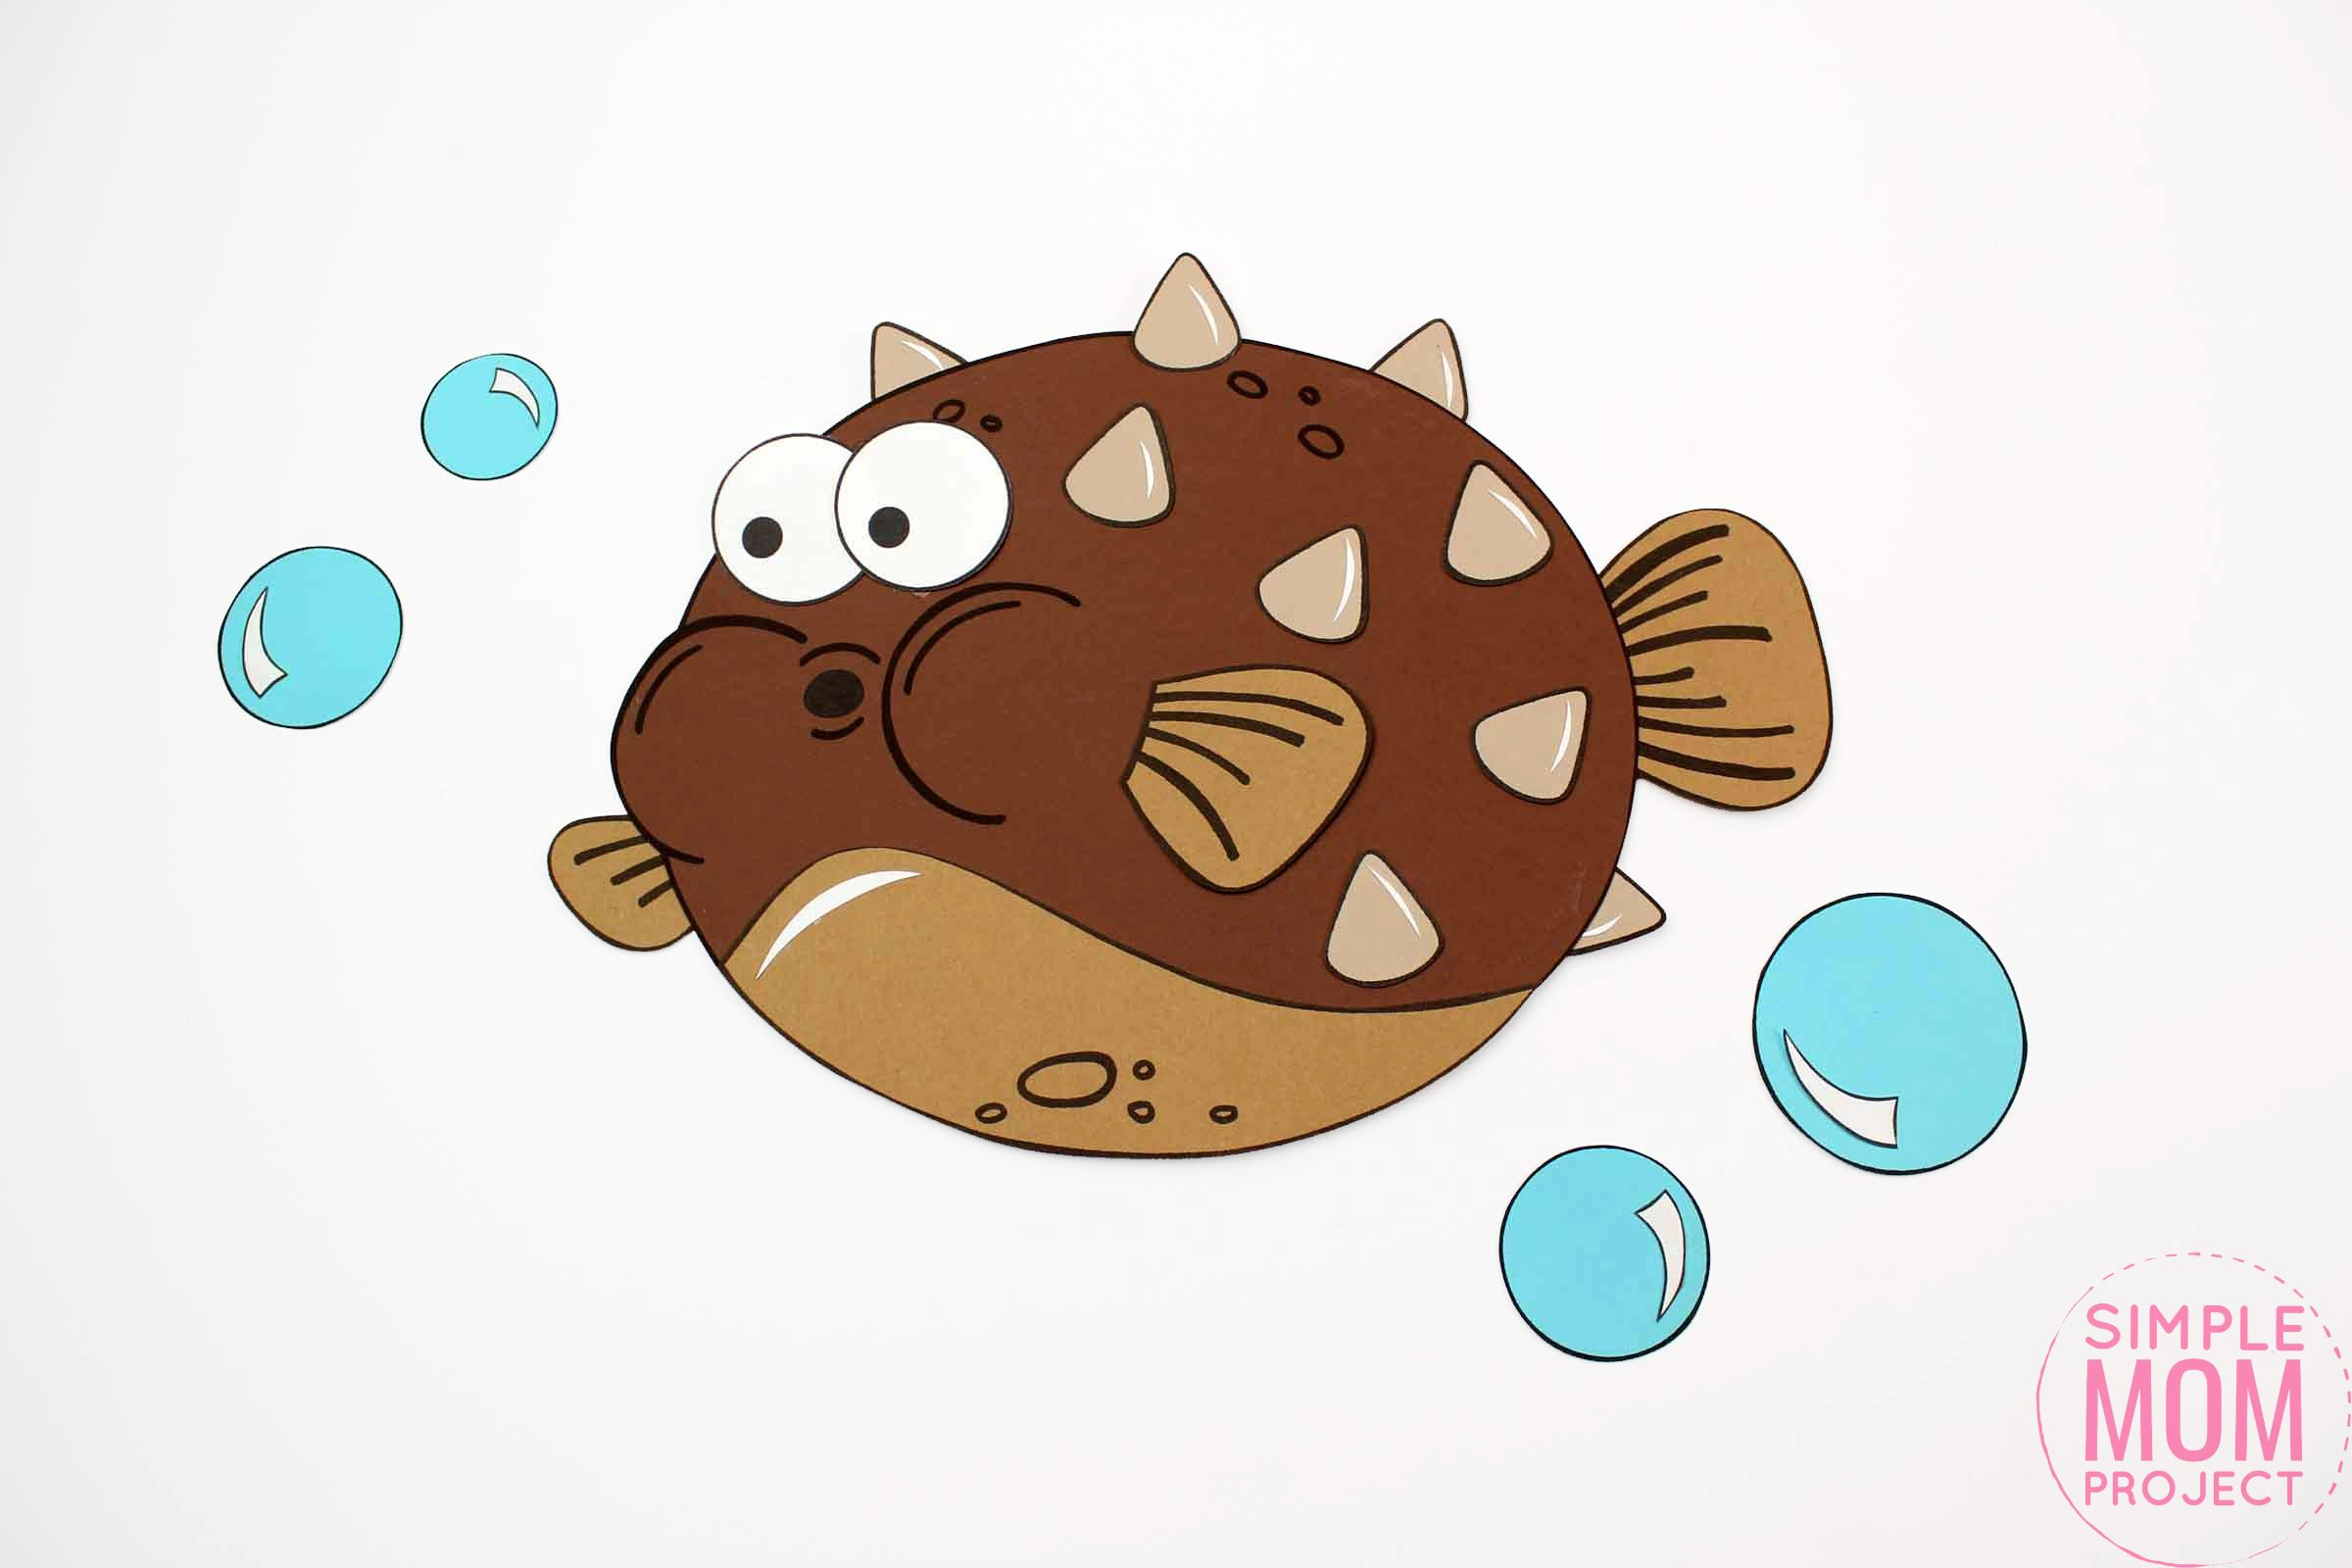 Free Printable Blow Fish Ocean Animal Craft for Kids, preschoolers and toddlers